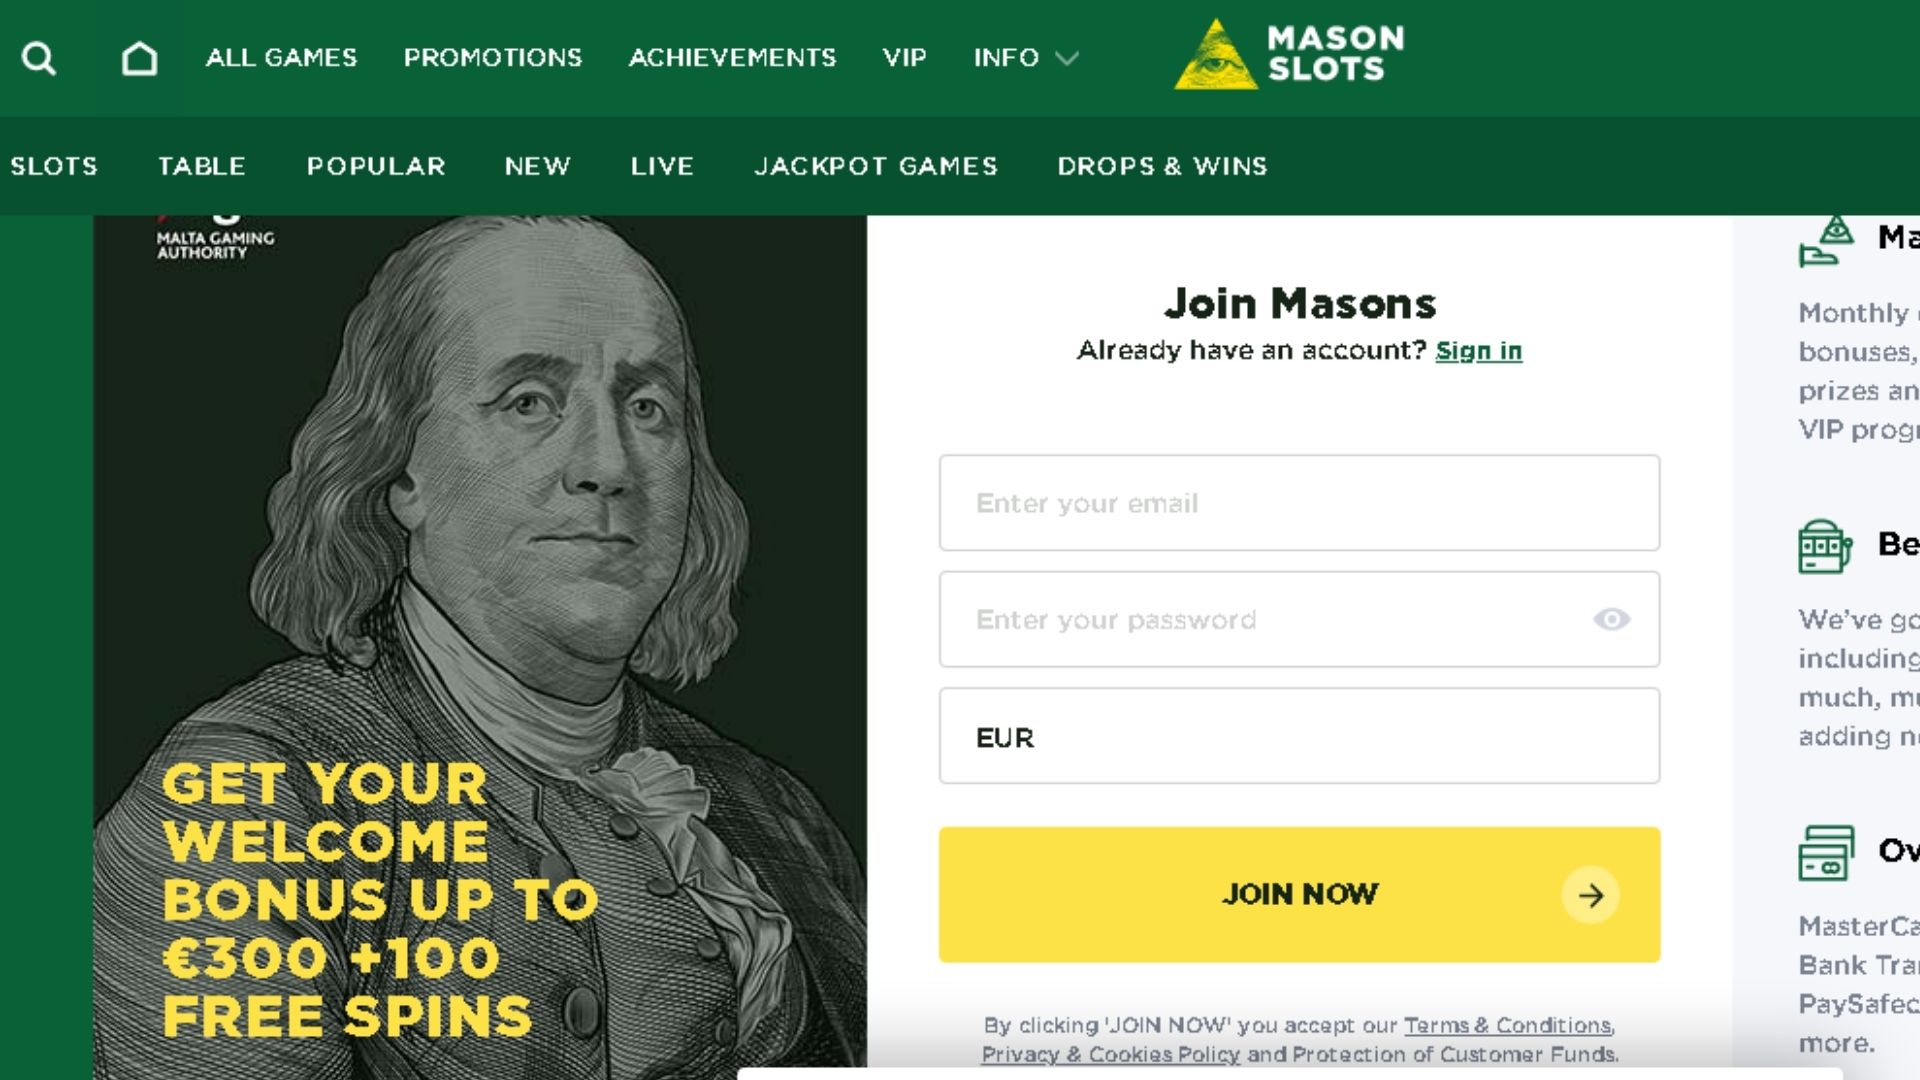 newest online casinos mason slots